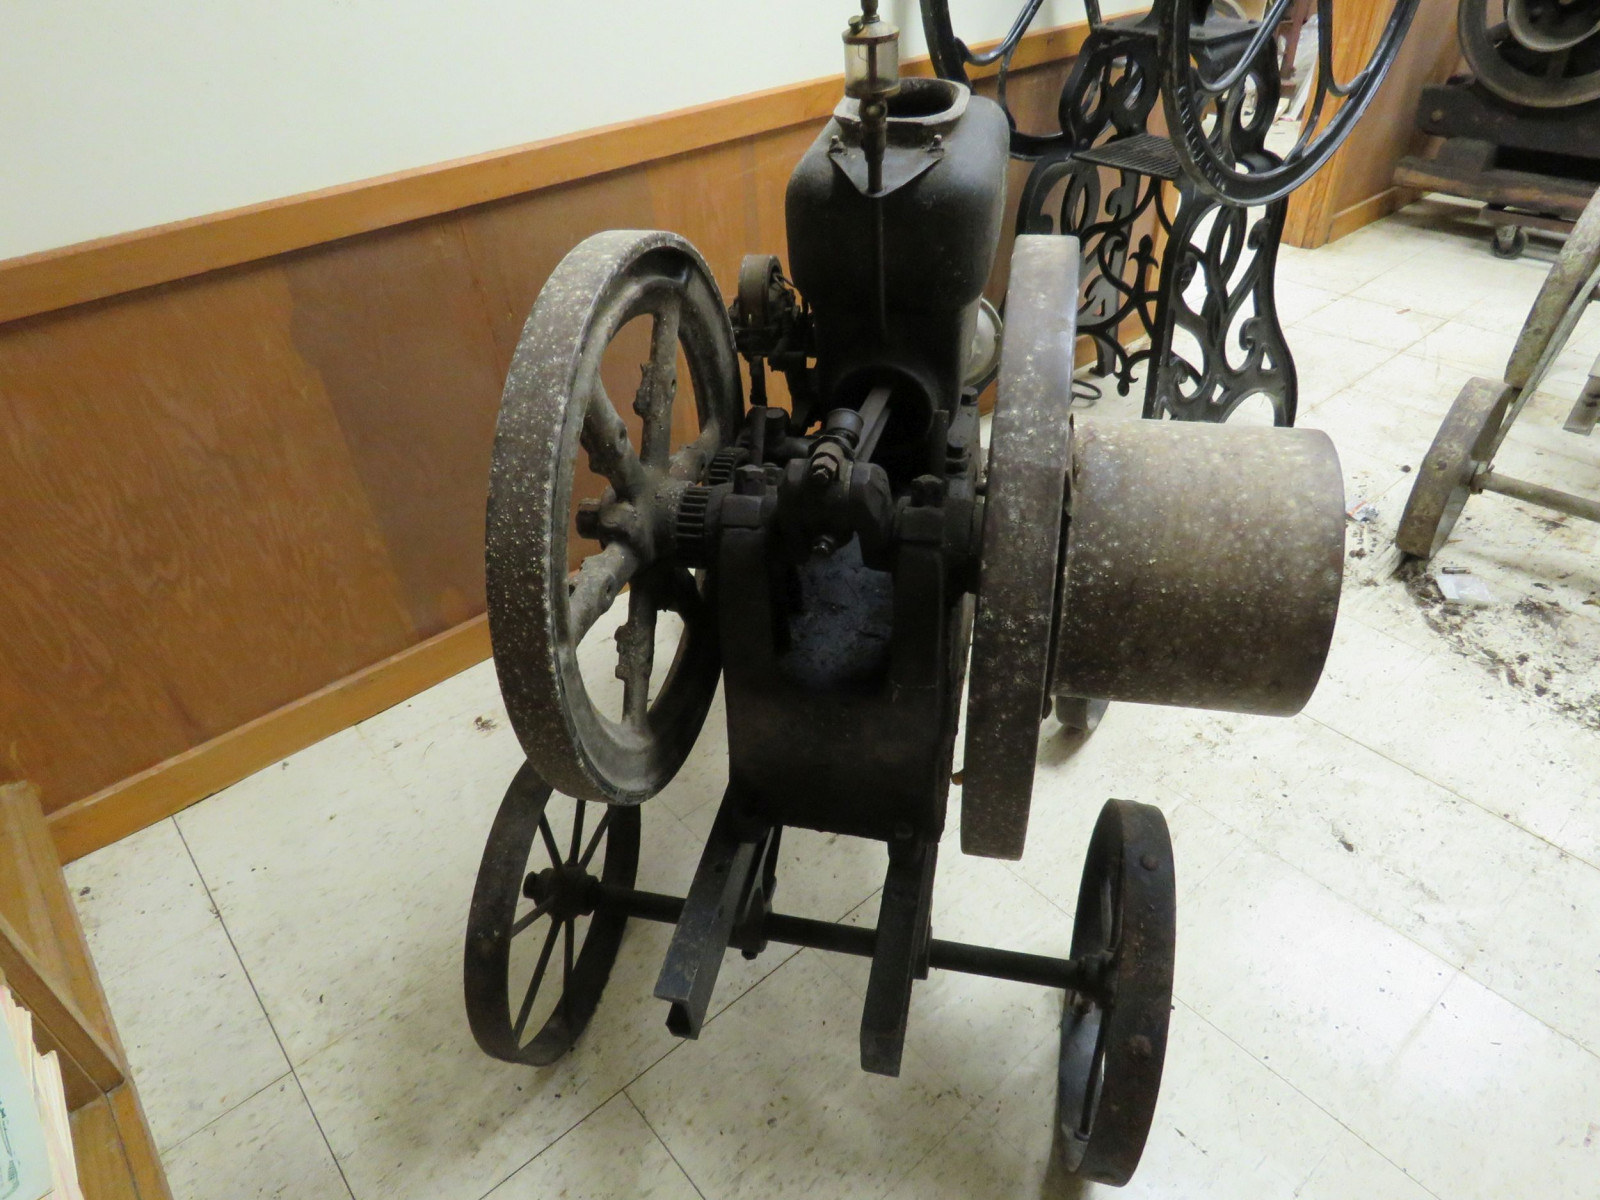 Original 3hp Stationary Gas Engine on Cart - Image 5